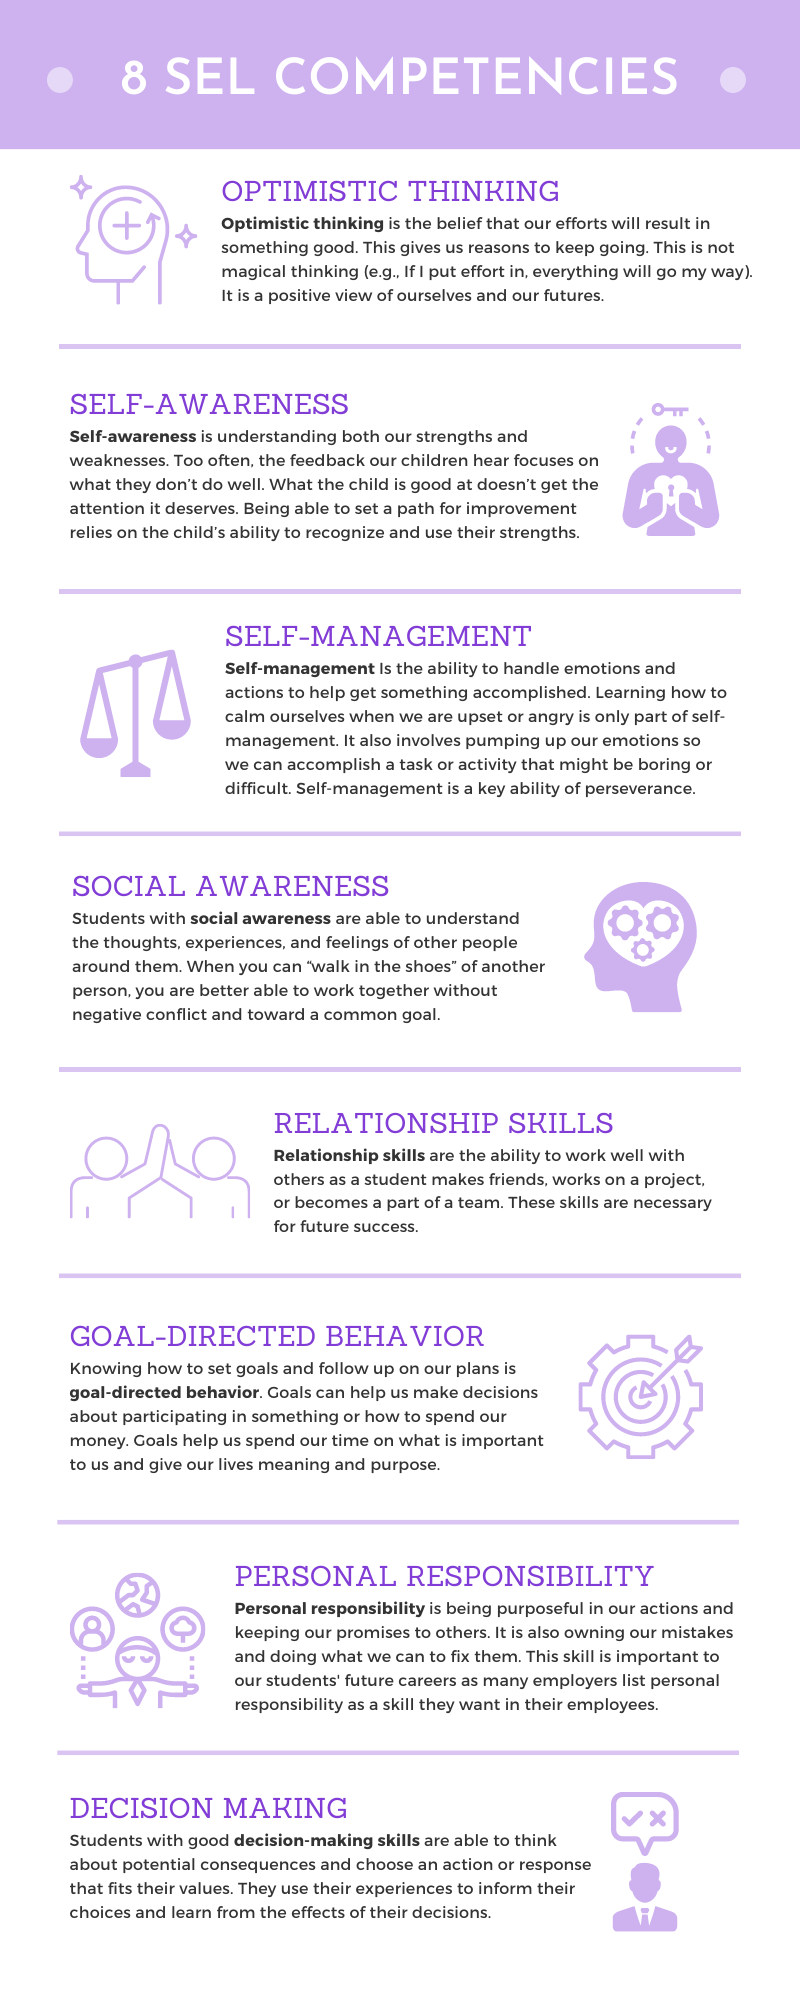 Infographic of 8 SEL competencies